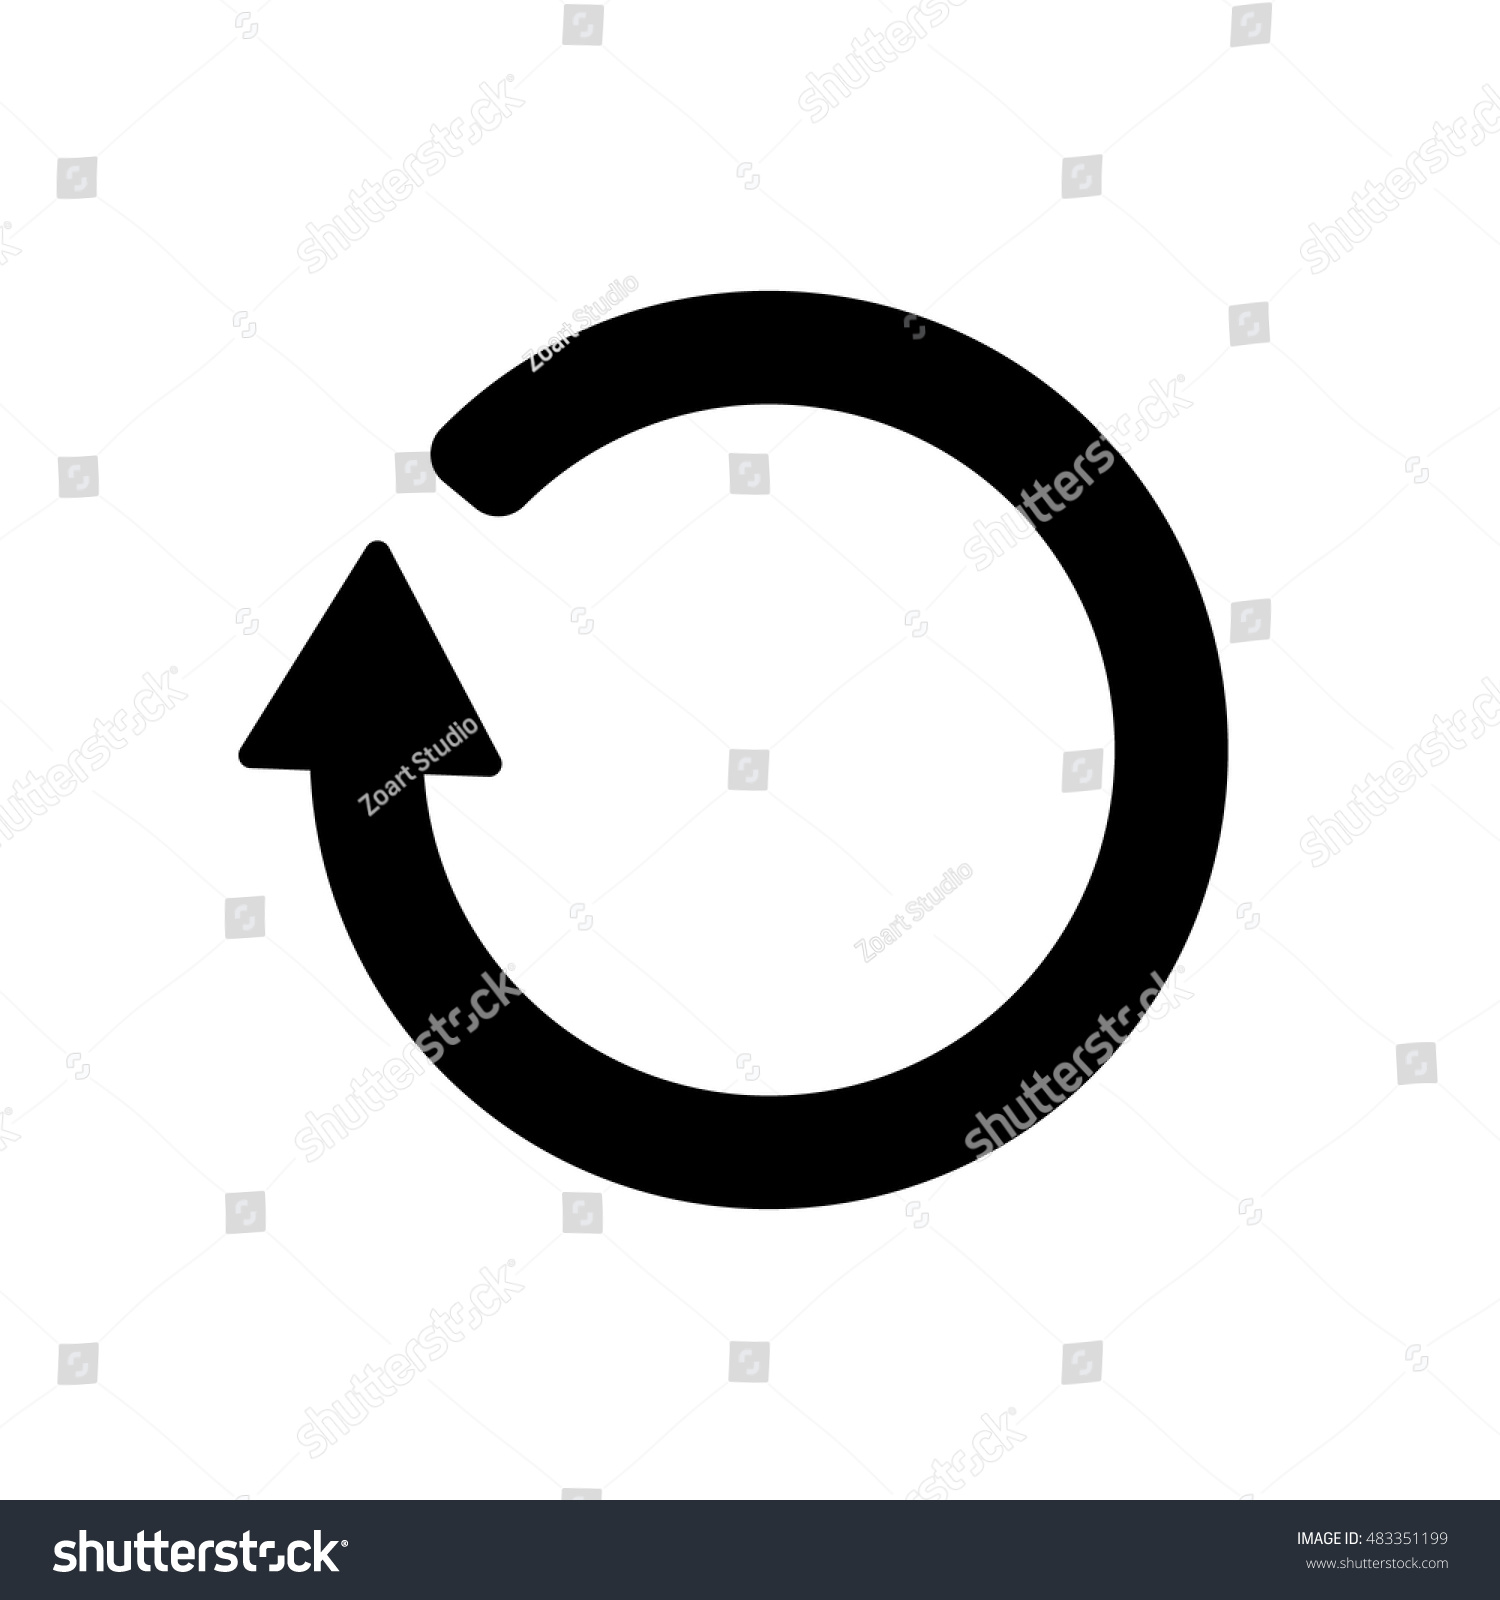 Refresh icon loading symbol stock vector 483351199 shutterstock loading symbol biocorpaavc Image collections